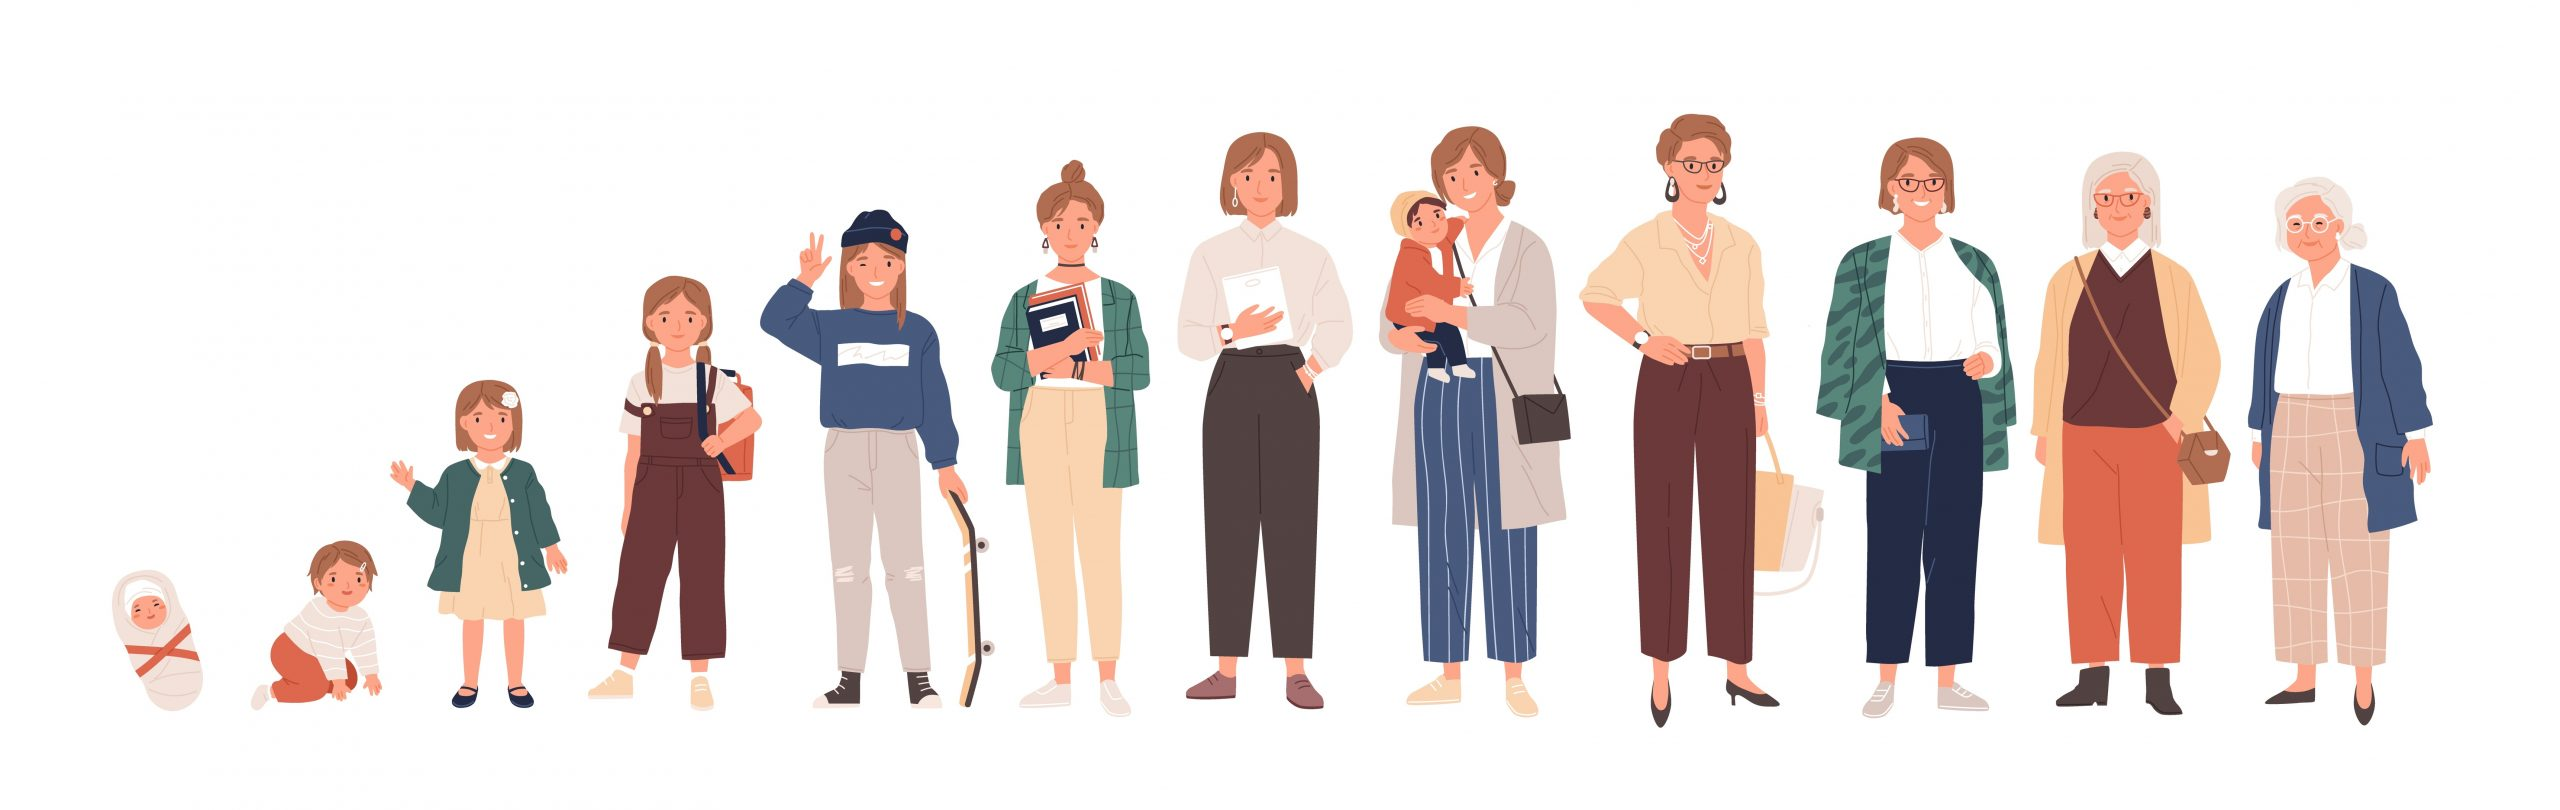 Woman life cycle flat vector illustration. Female person aging stages, lady growth phases set. Girl growing up from newborn baby to senior adult cartoon character. Human lifespan development